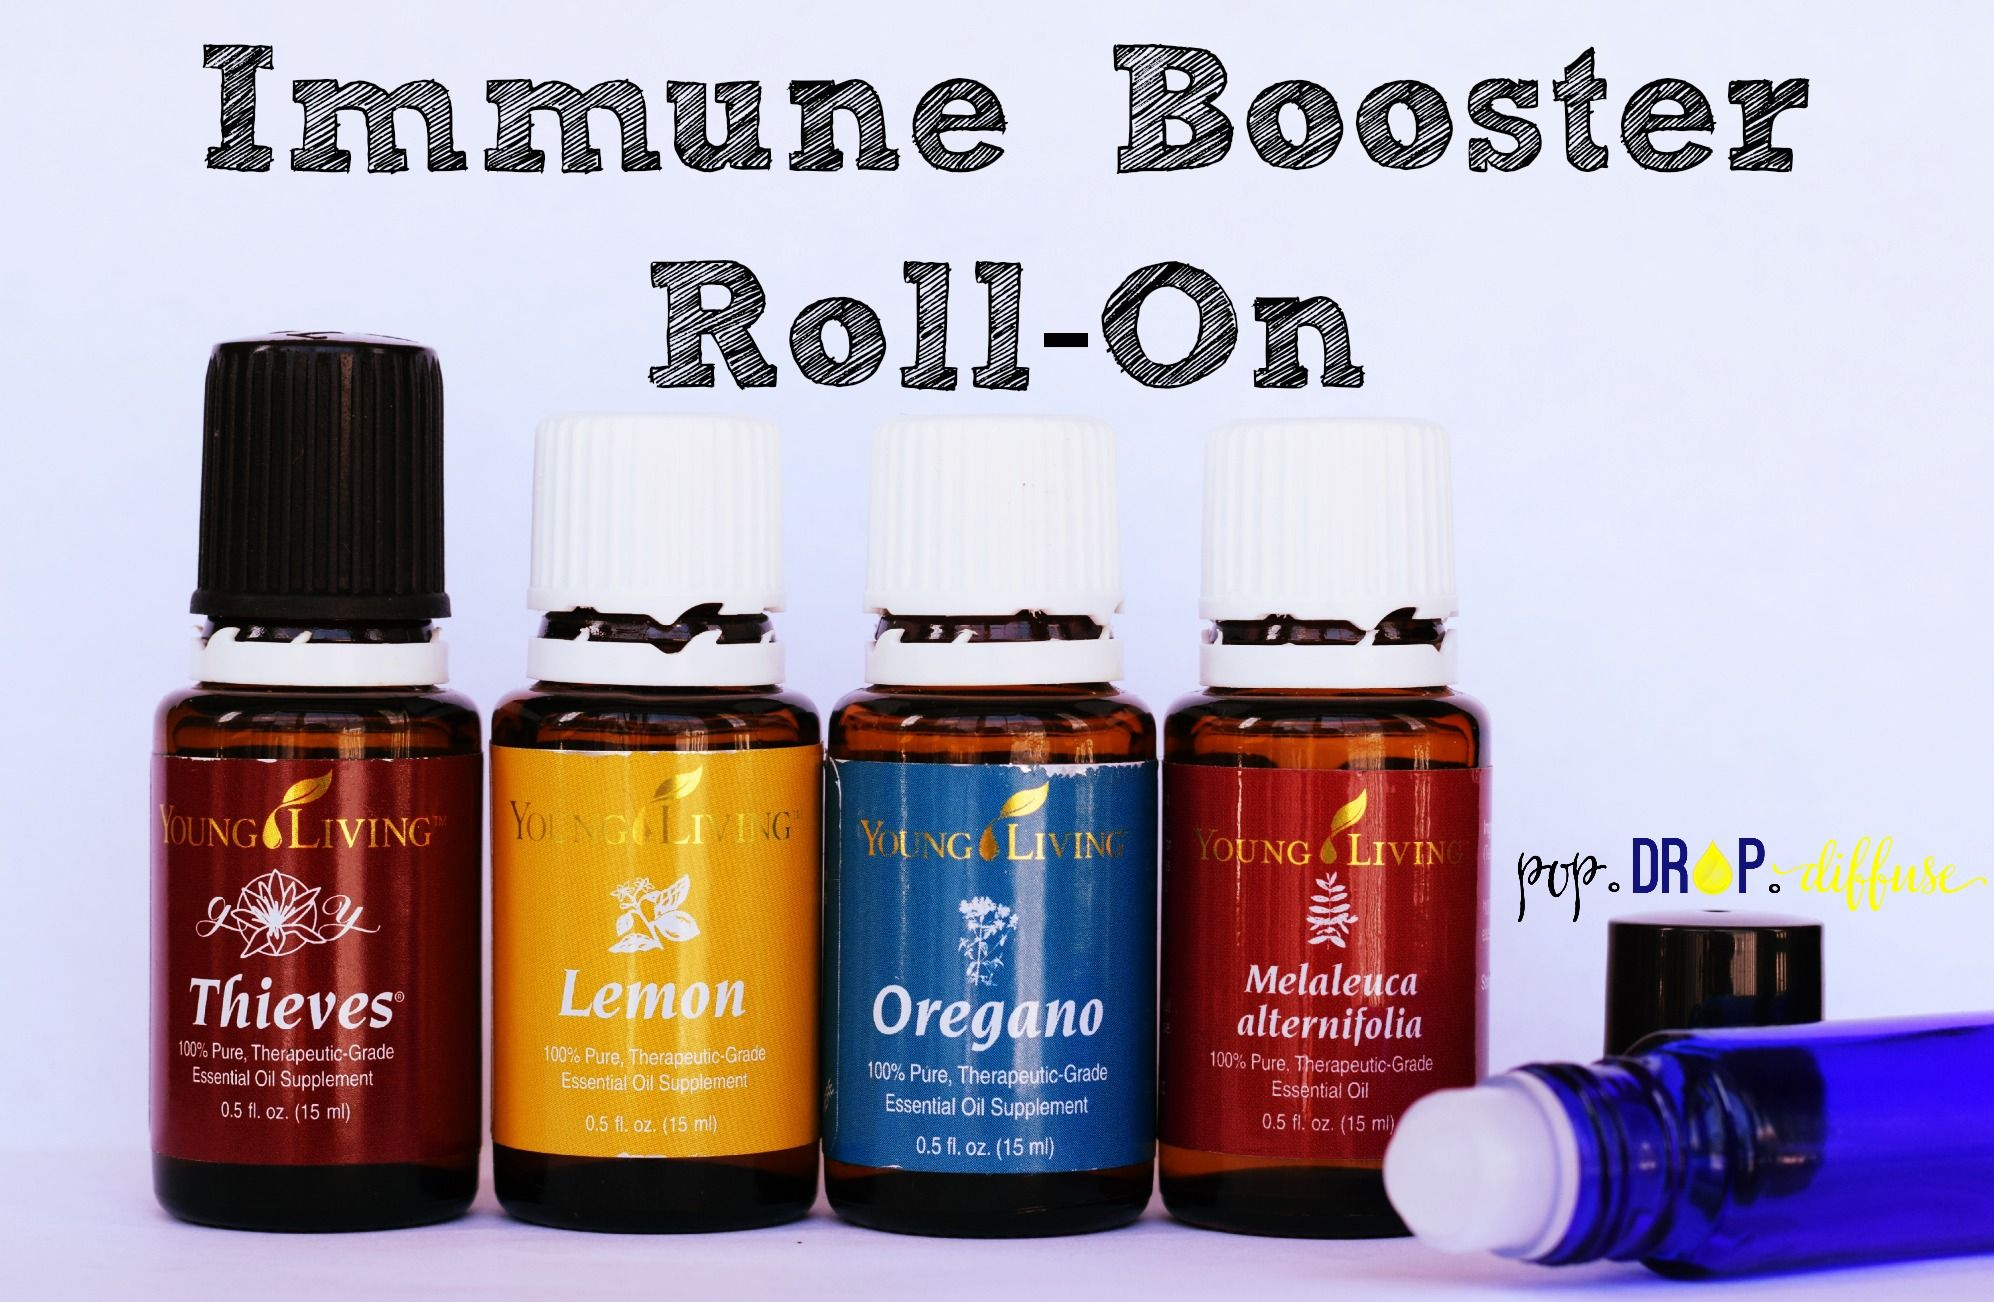 Apply this essential oil immune booster recipe to the bottoms of feet and up and down spine prior to bed to help prevent and treat colds and flu viruses naturally. | www.popdropdiffuse.com